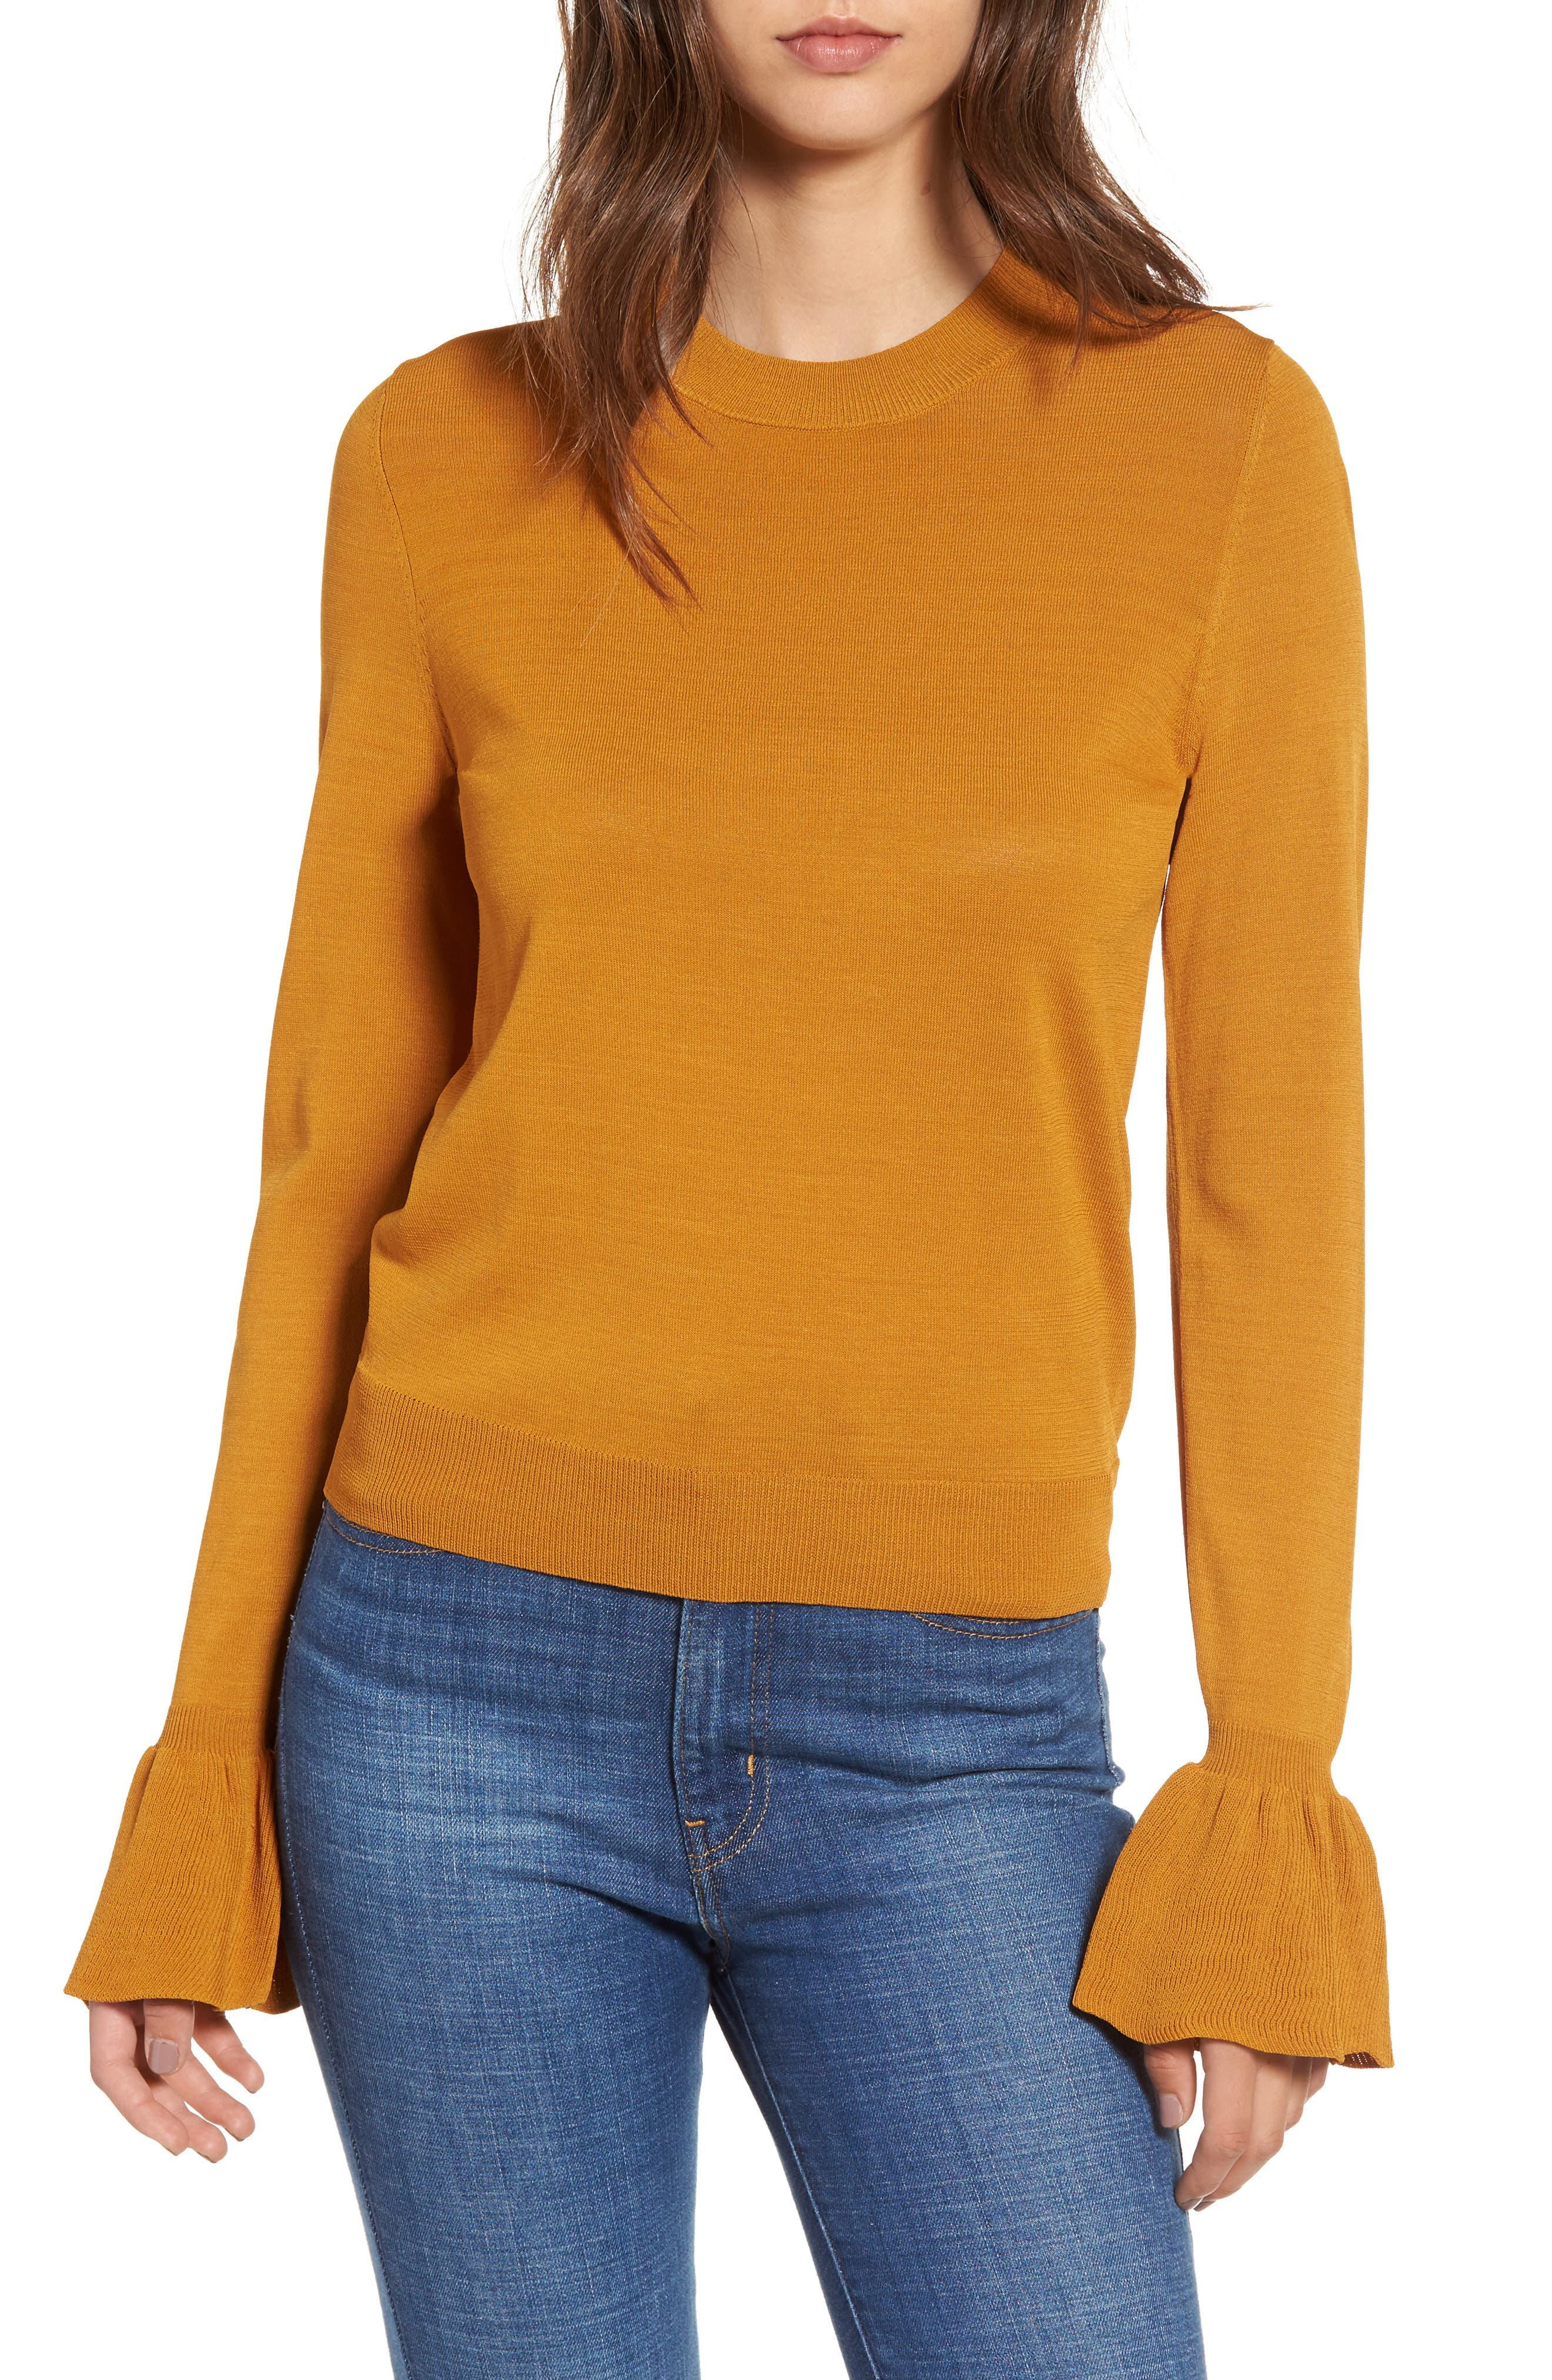 Alternate Image 1 Selected - Leith Flare Cuff Sweater